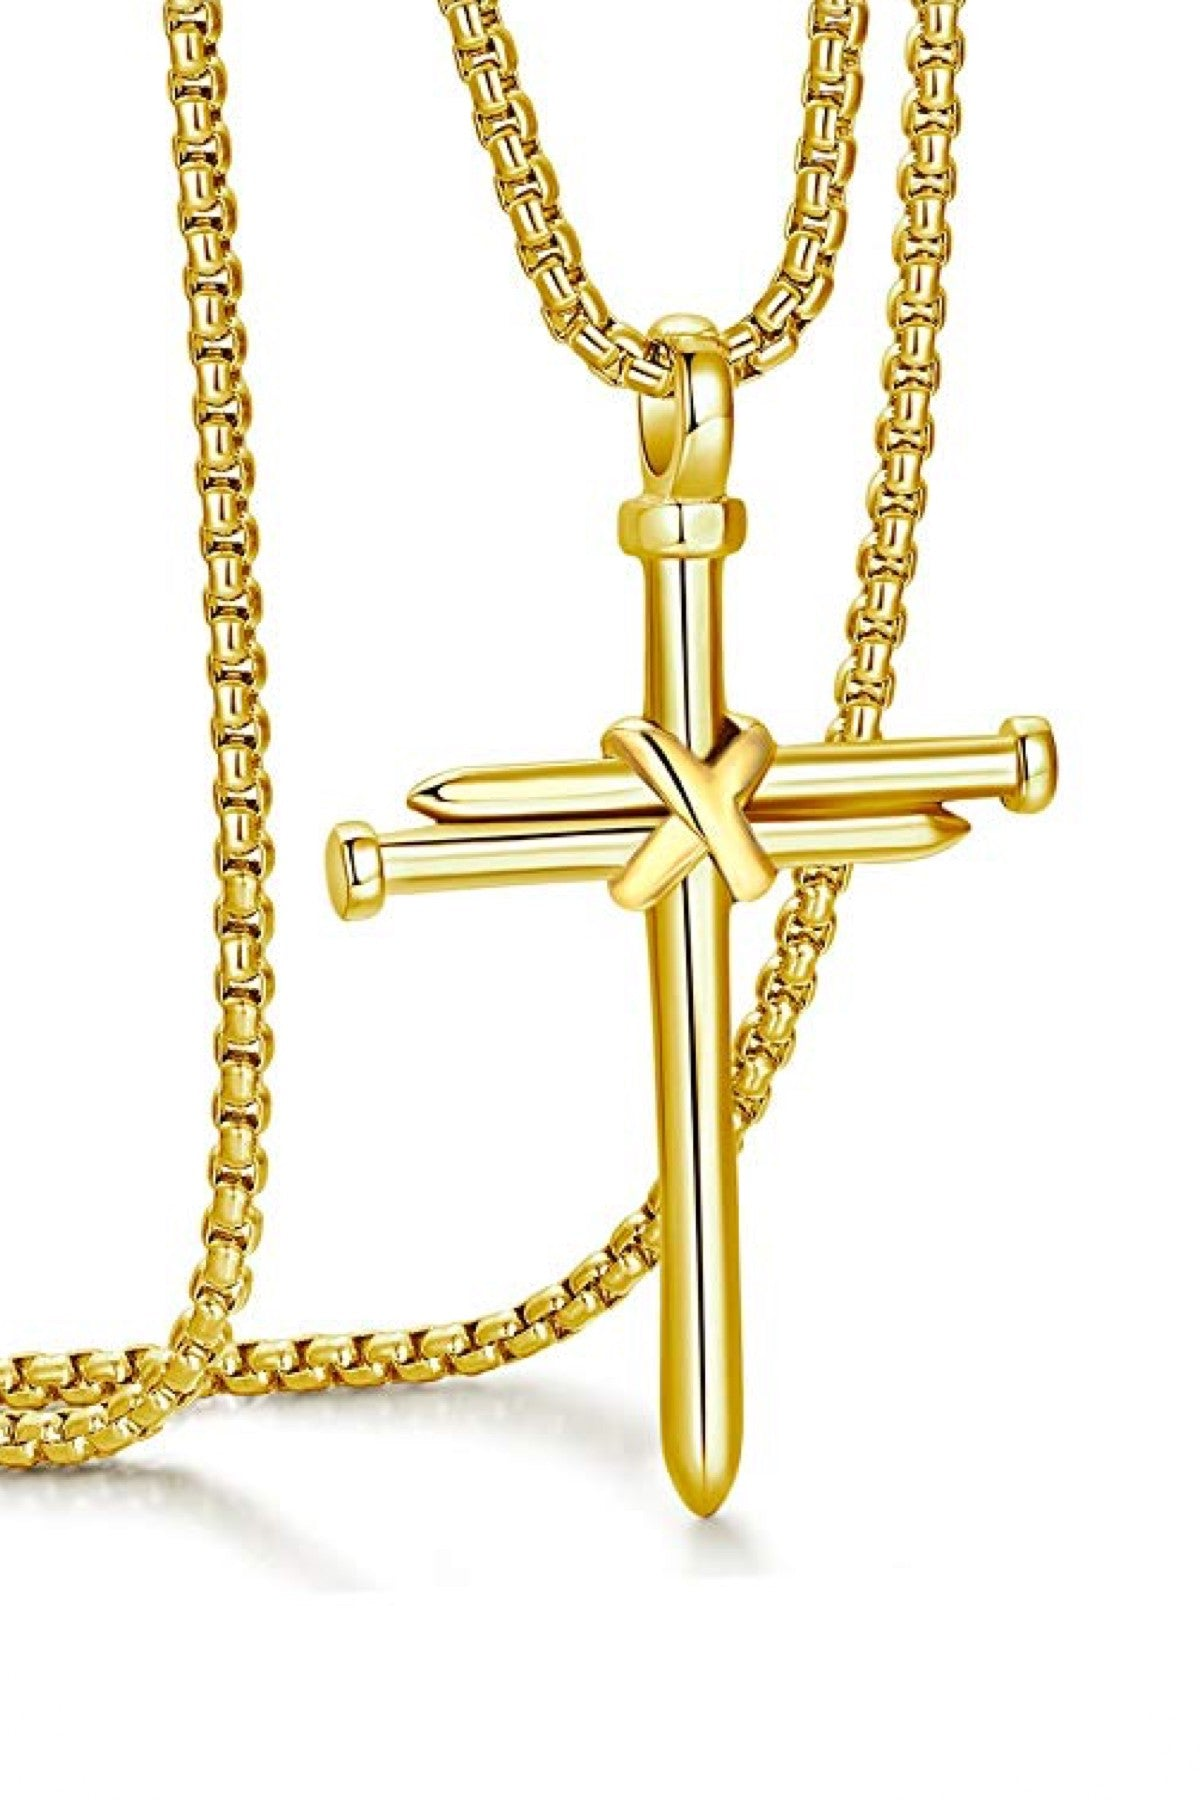 18k Gold Cross Nail Pendant Necklace